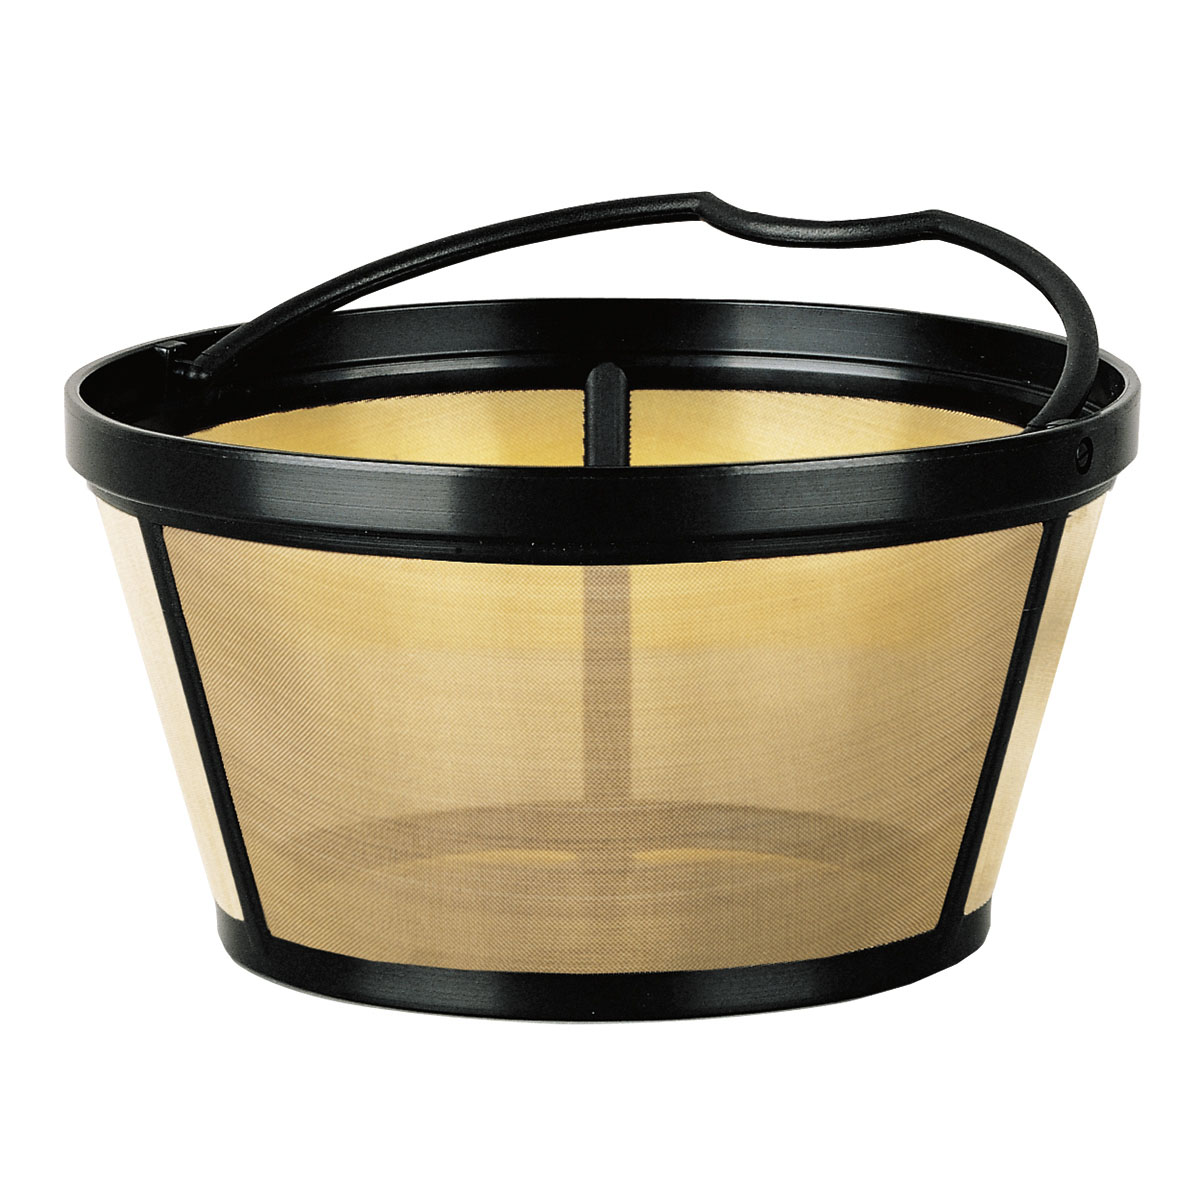 Oster Coffee Maker Basket : Oster 12-cup Programmable Coffee Maker 3305-33 Parts Oster Canada